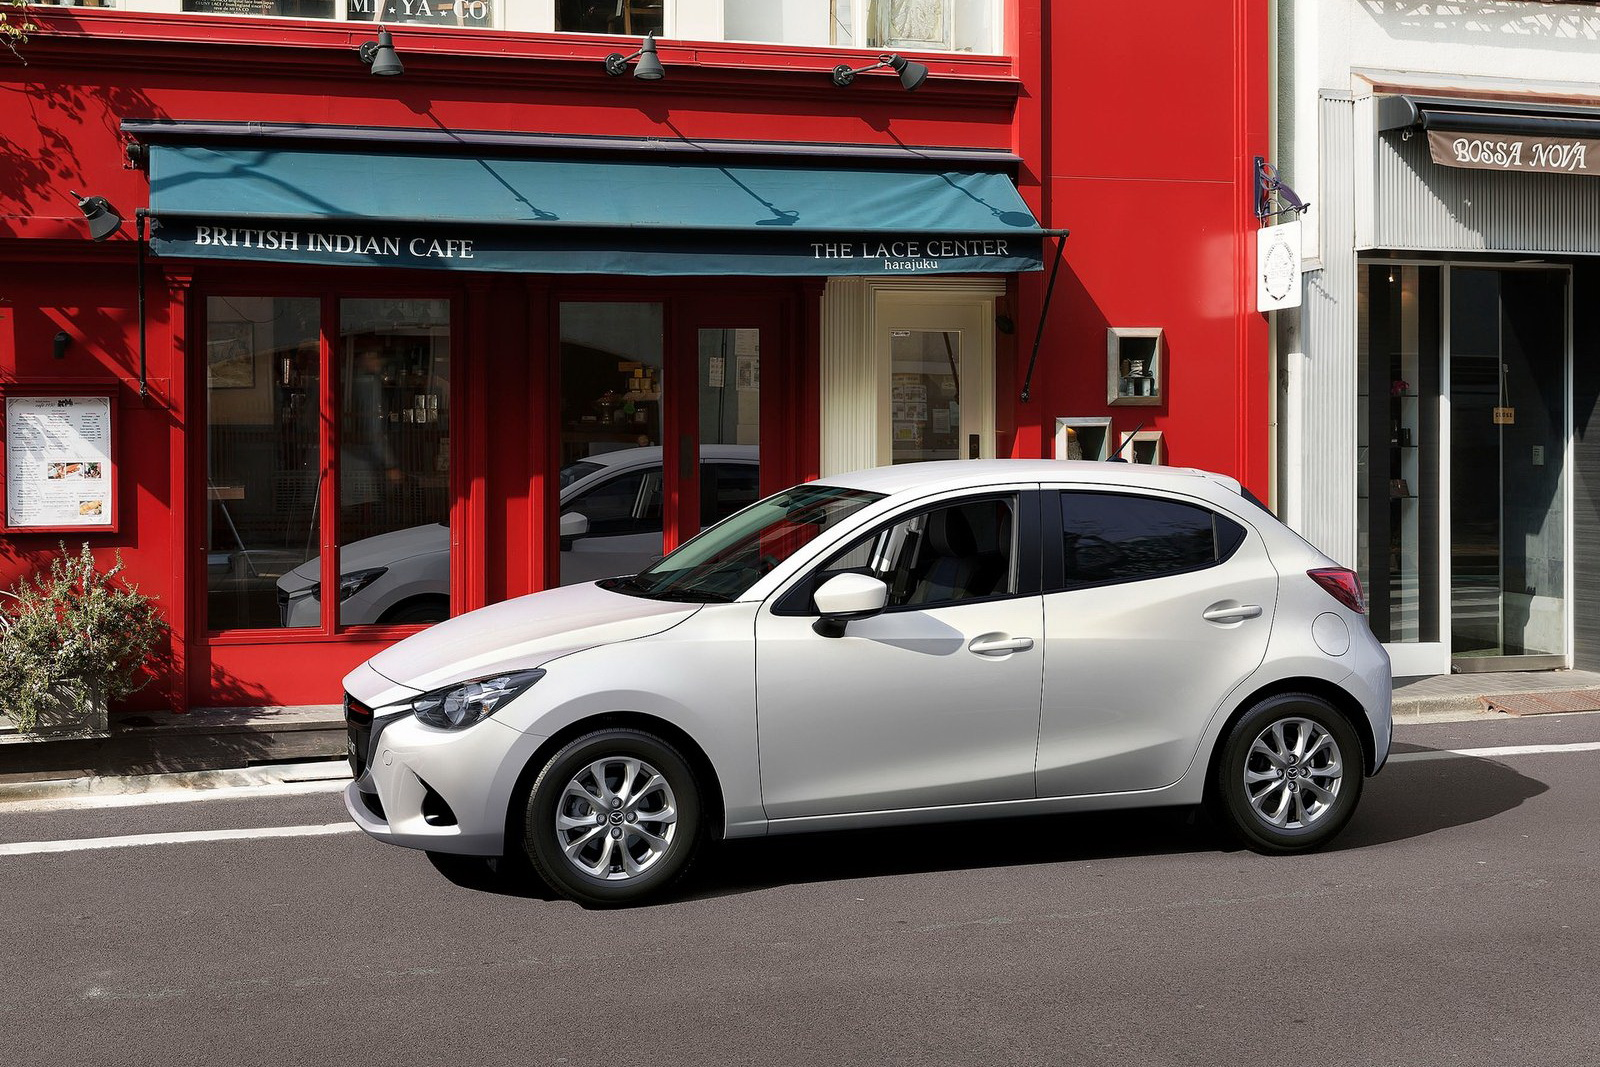 2018 mazda 2 paris release date new suv price new suv price. Black Bedroom Furniture Sets. Home Design Ideas